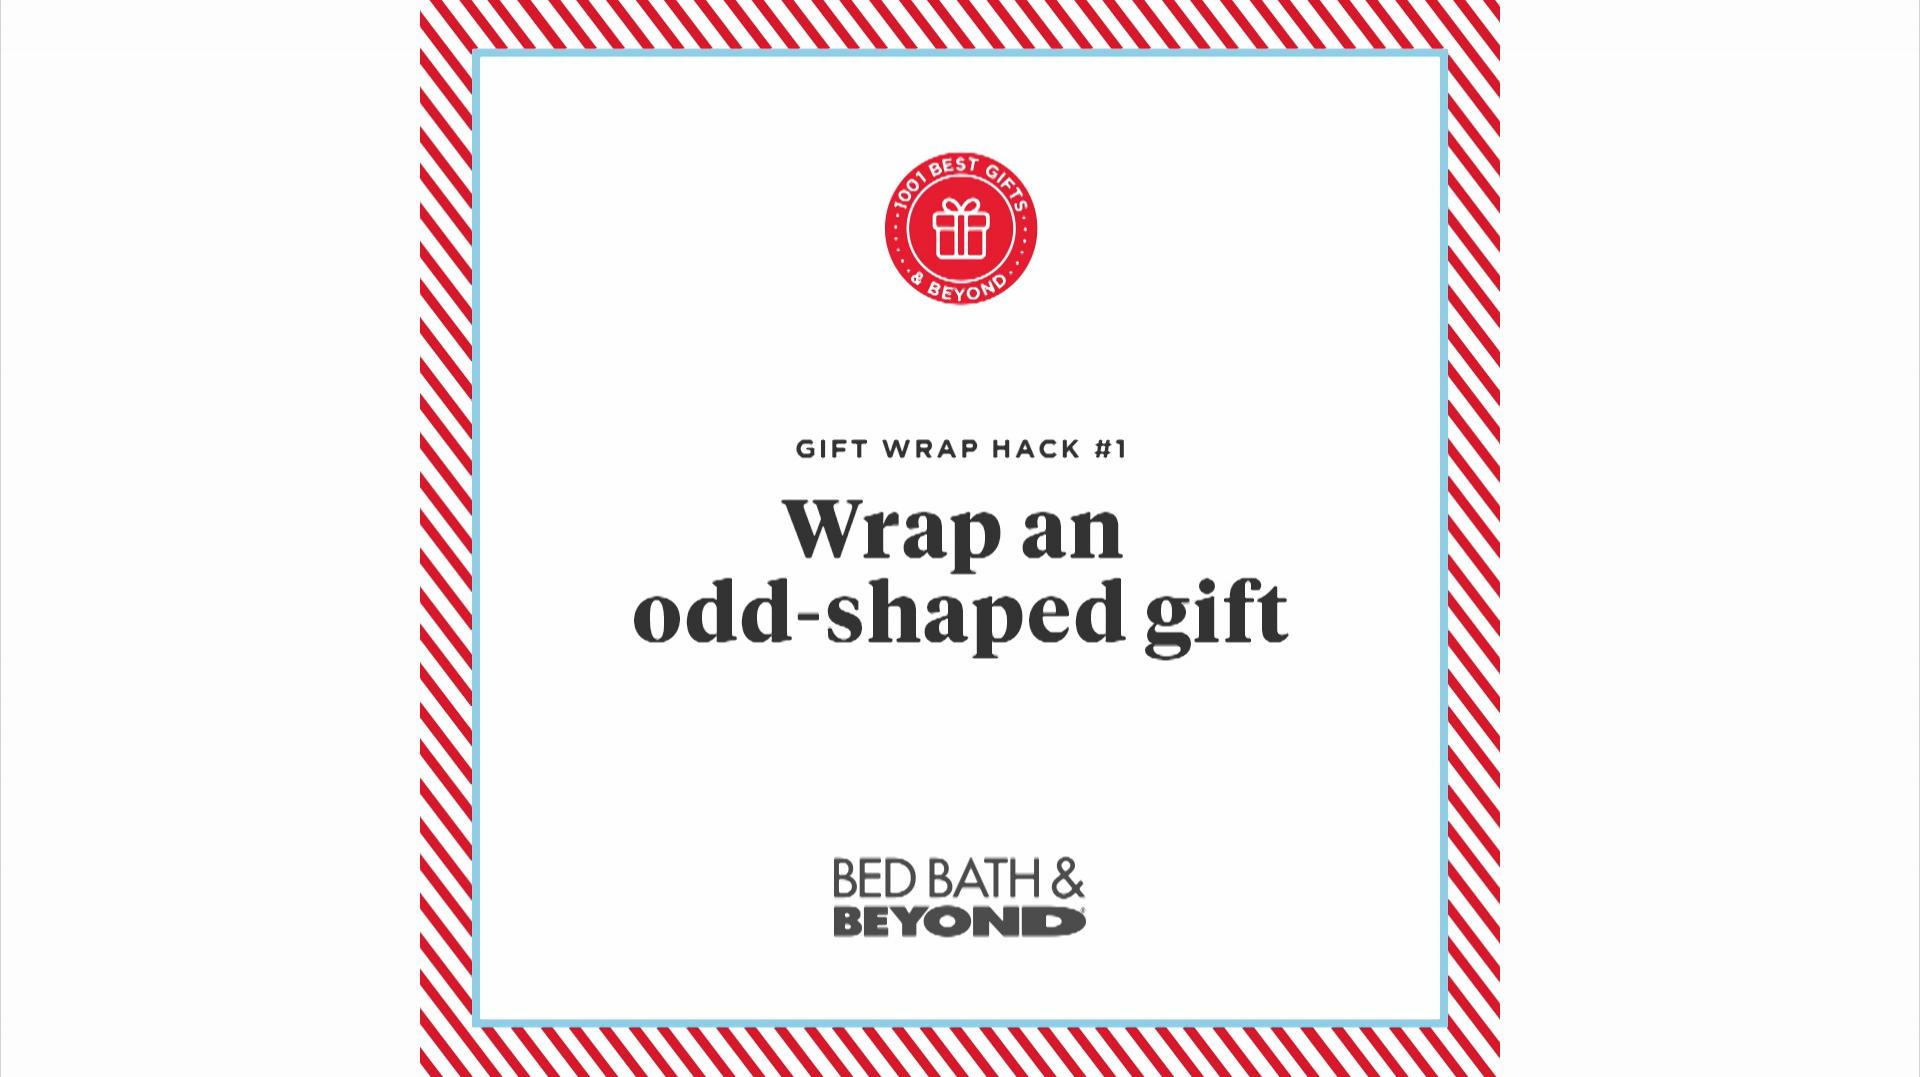 Wrap an Odd-Shaped Gift